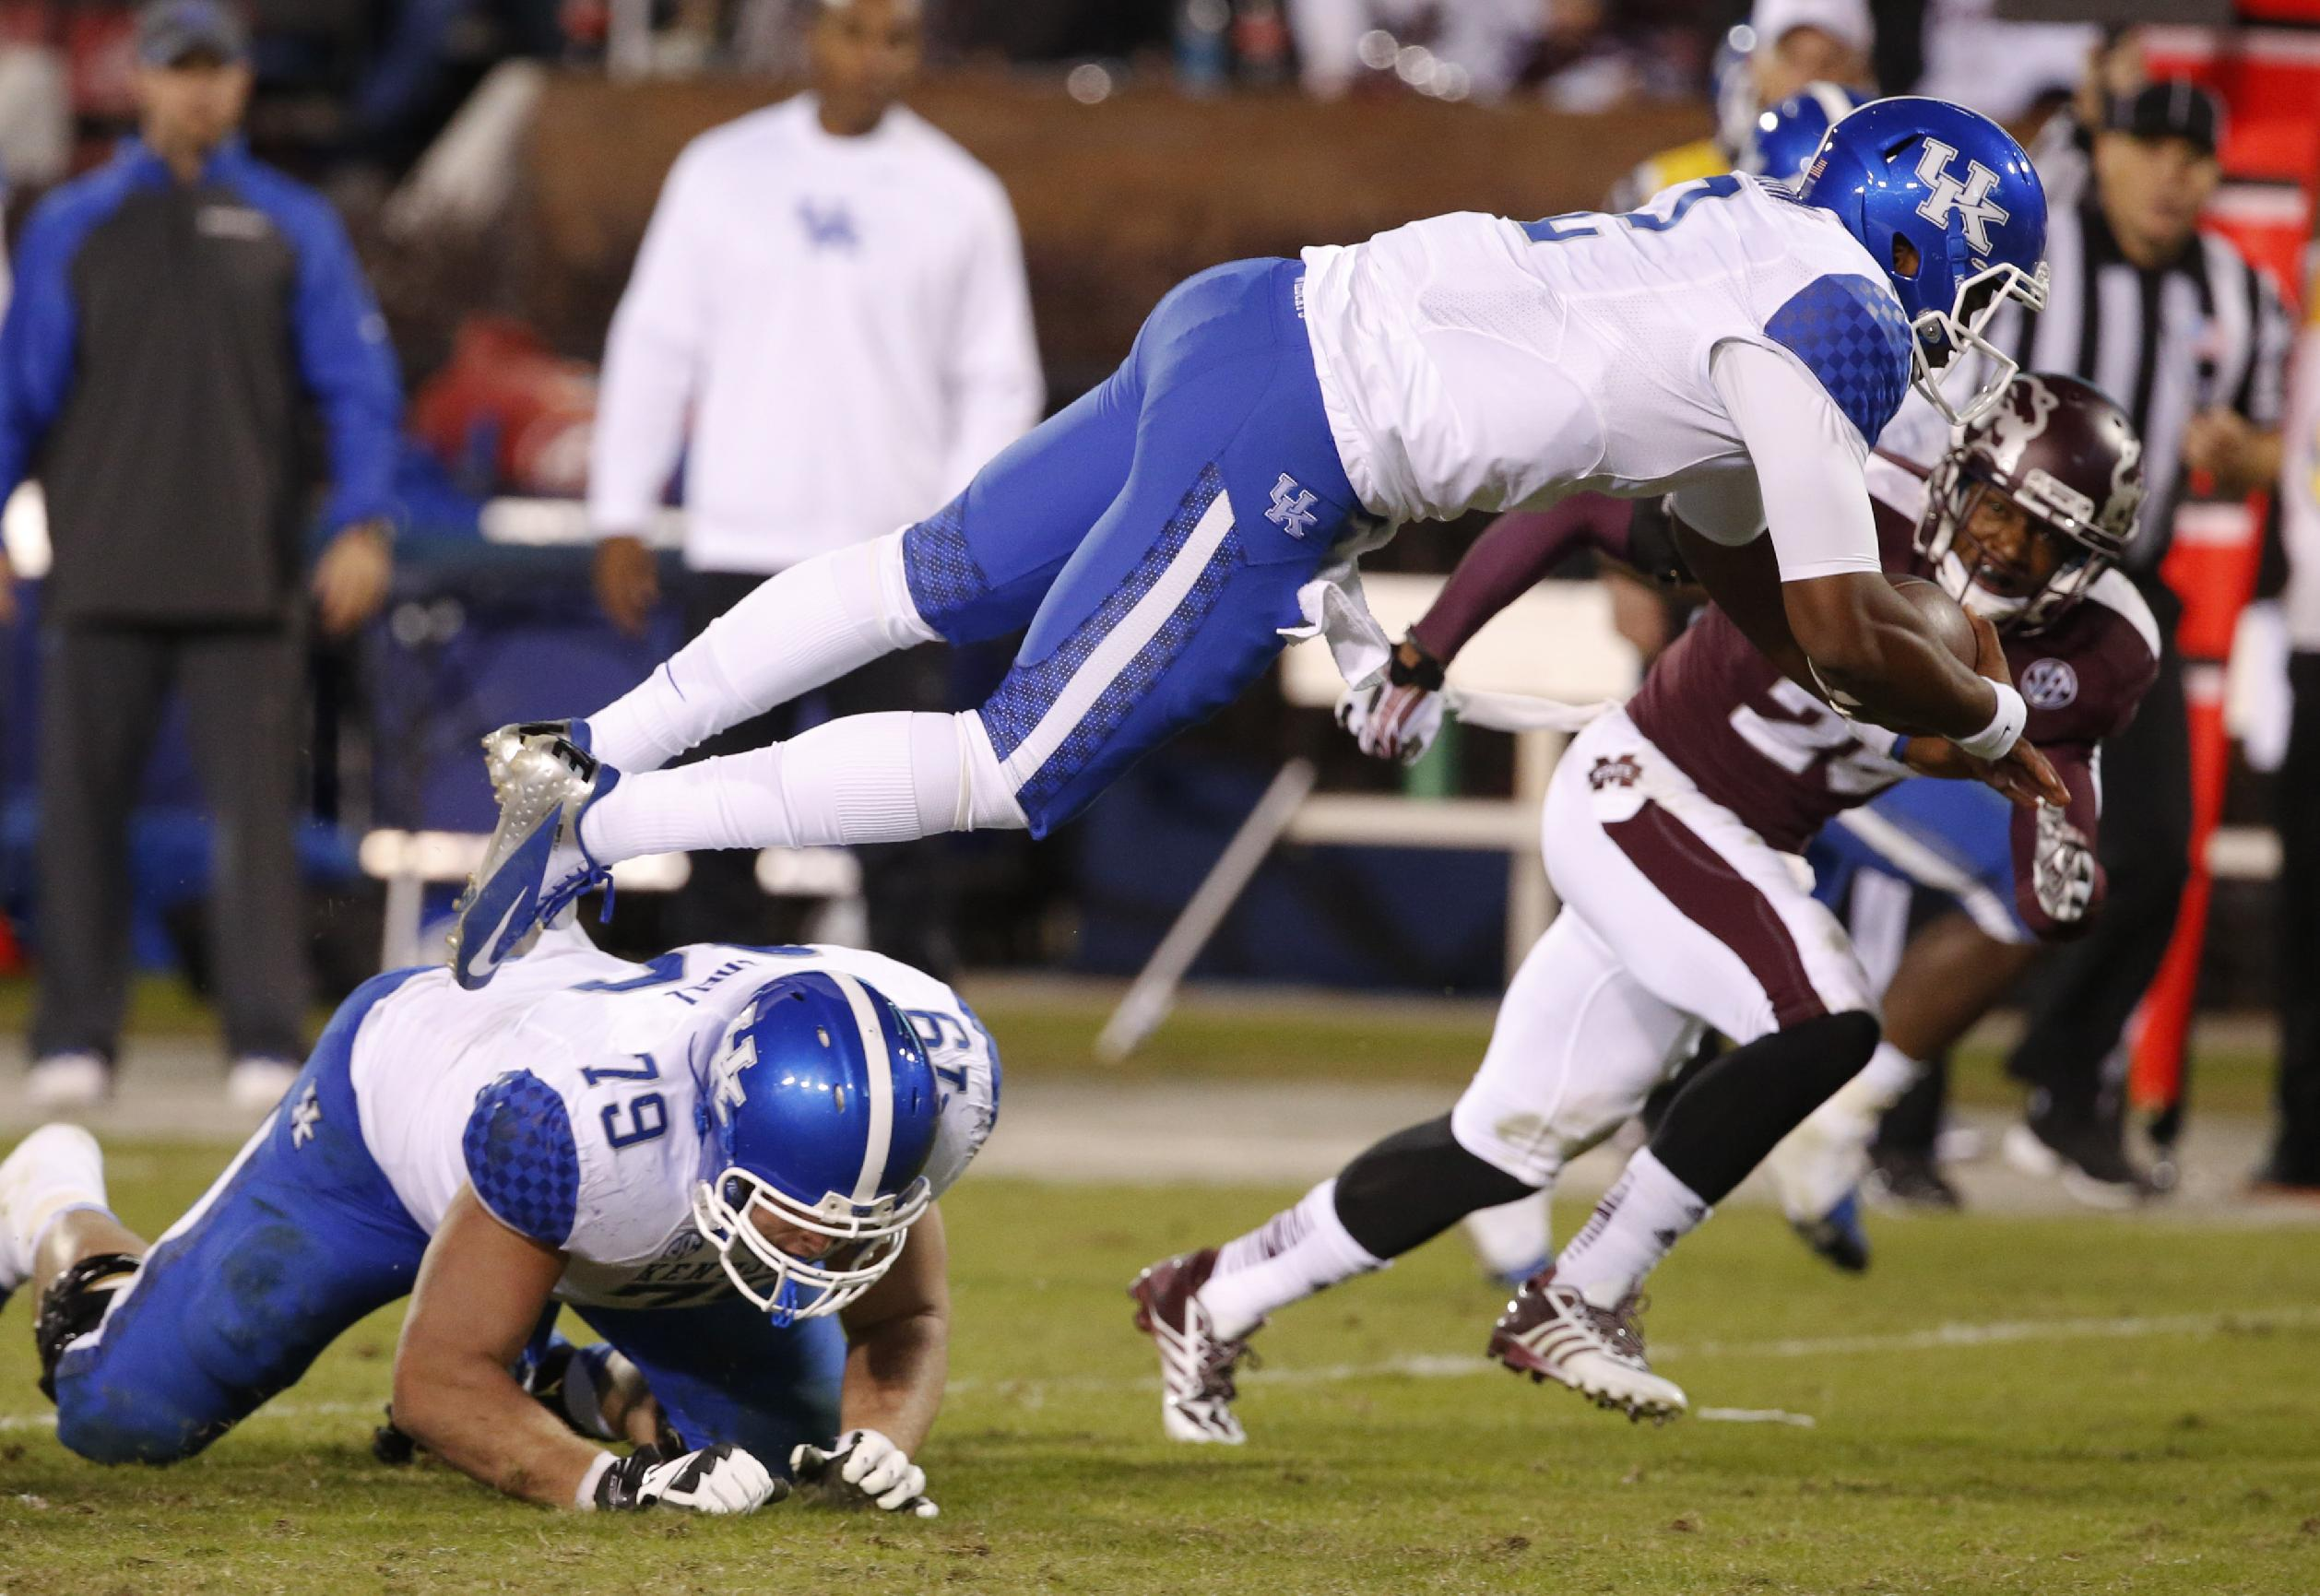 Kentucky quarterback Jalen Whitlow (2) dives over his guard Kevin Mitchell (79) for short yardage in the second half of their NCAA college football game against Mississippi State at Davis Wade Stadium in Starkville, Miss., Thursday, Oct. 24, 2013. Mississippi State won 28-22